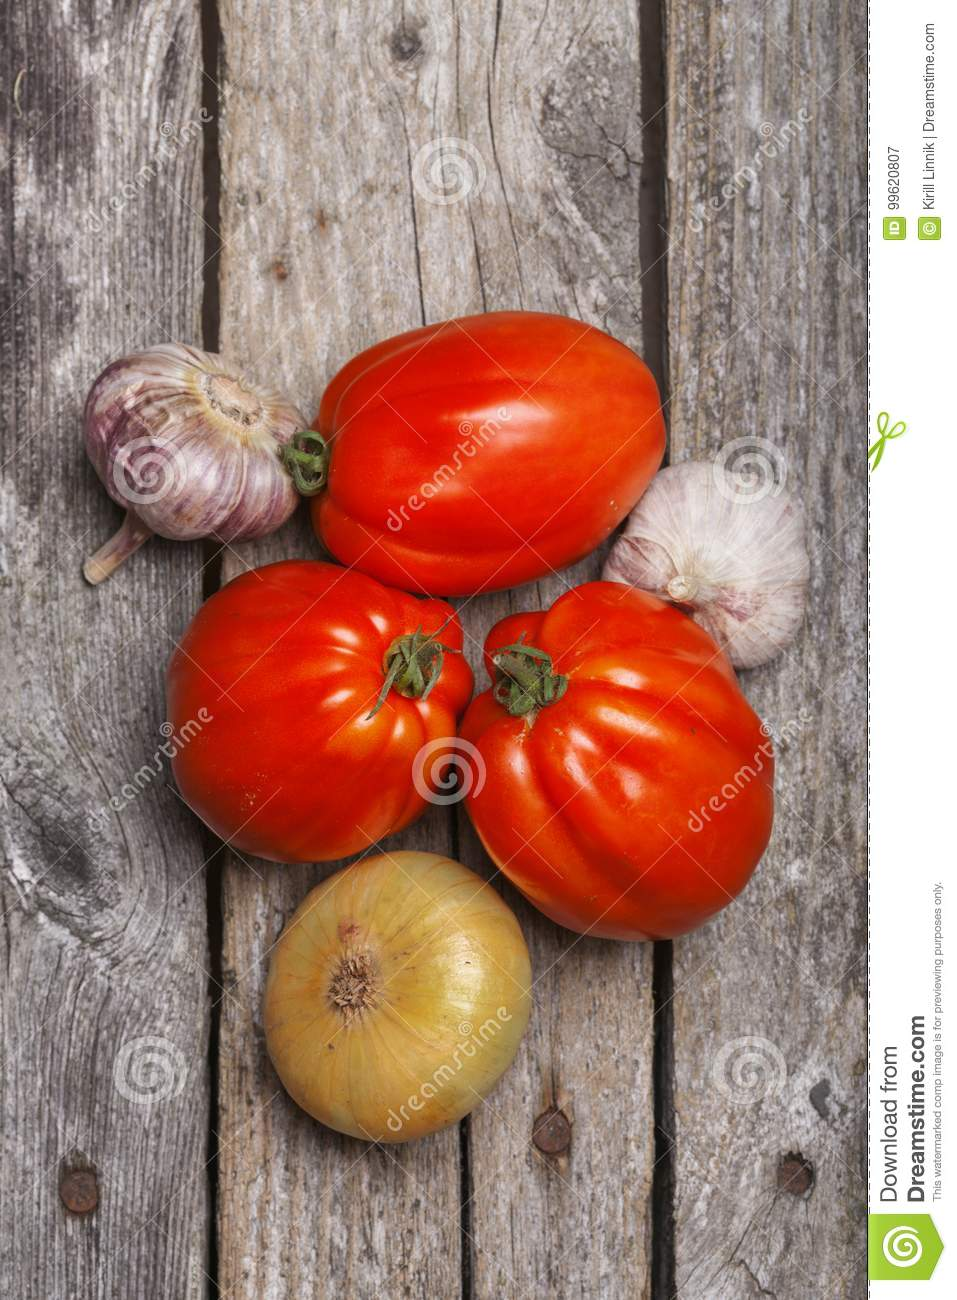 Download Tomatoes, Onion And Garlic On The Table Stock Image - Image of onion, meal: 99620807